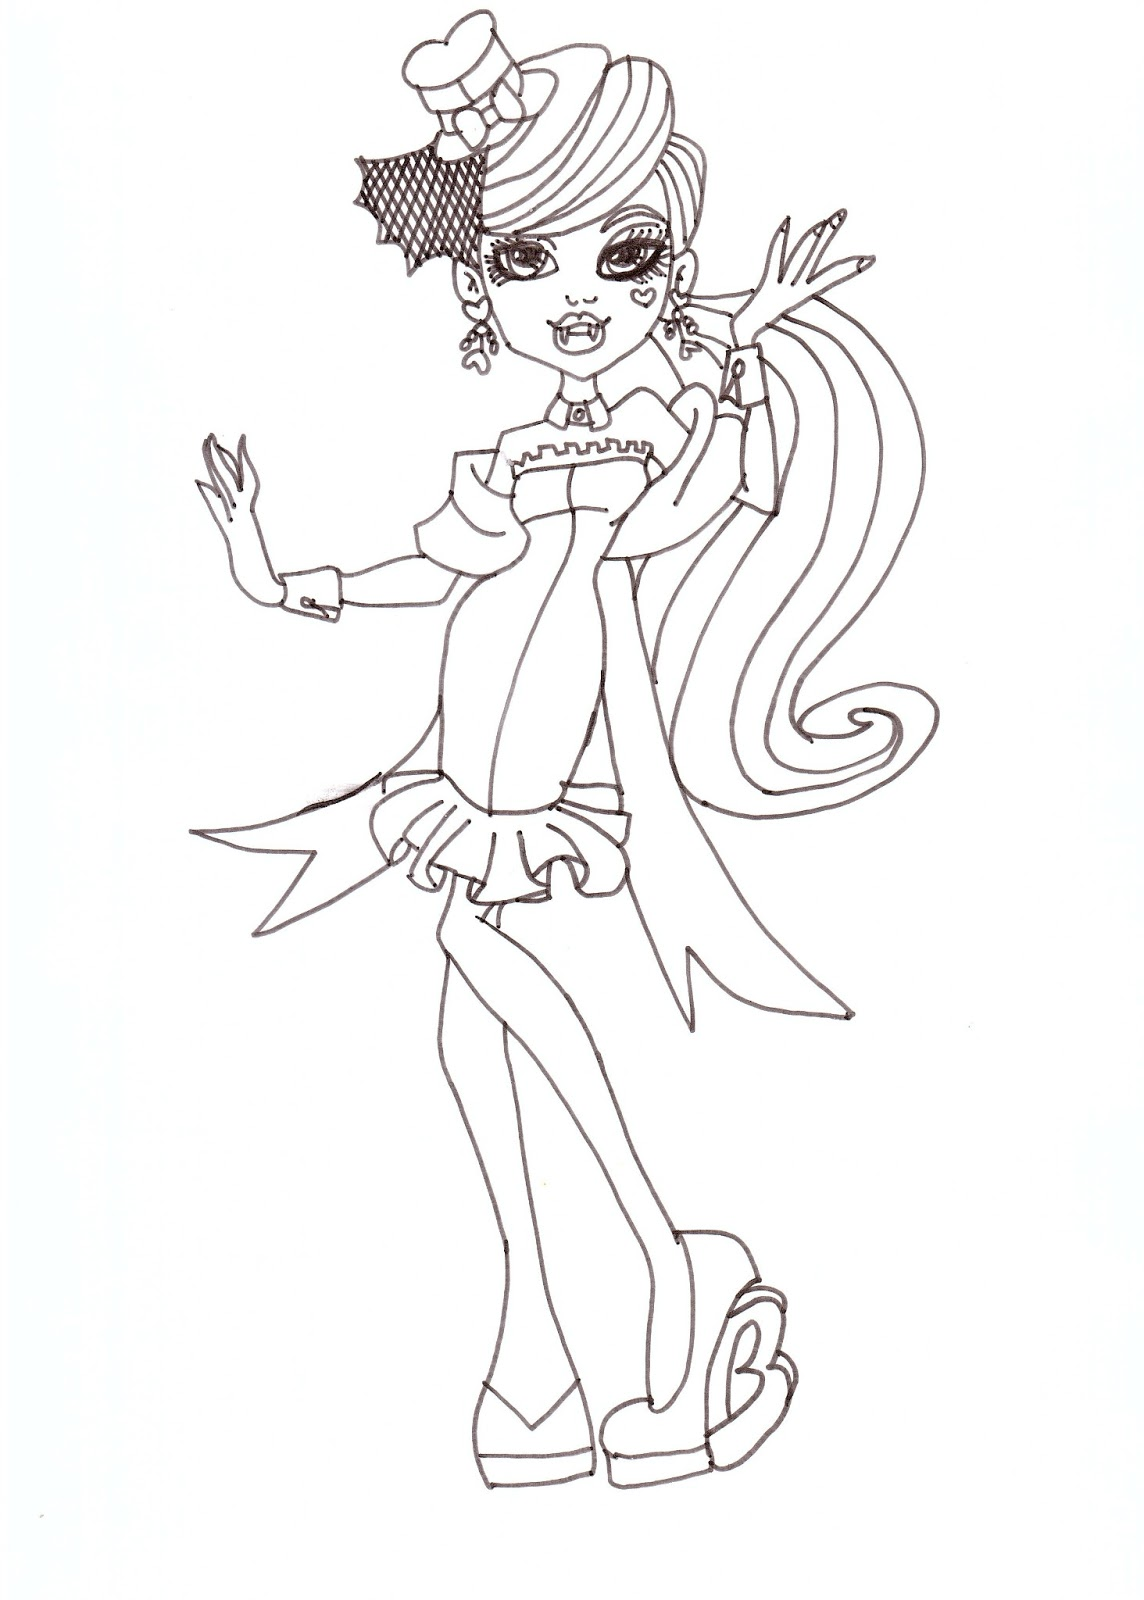 Draculaura Dawn Of The Dance Coloring Sheet CLICK HERE TO PRINT Free Printable Monster High